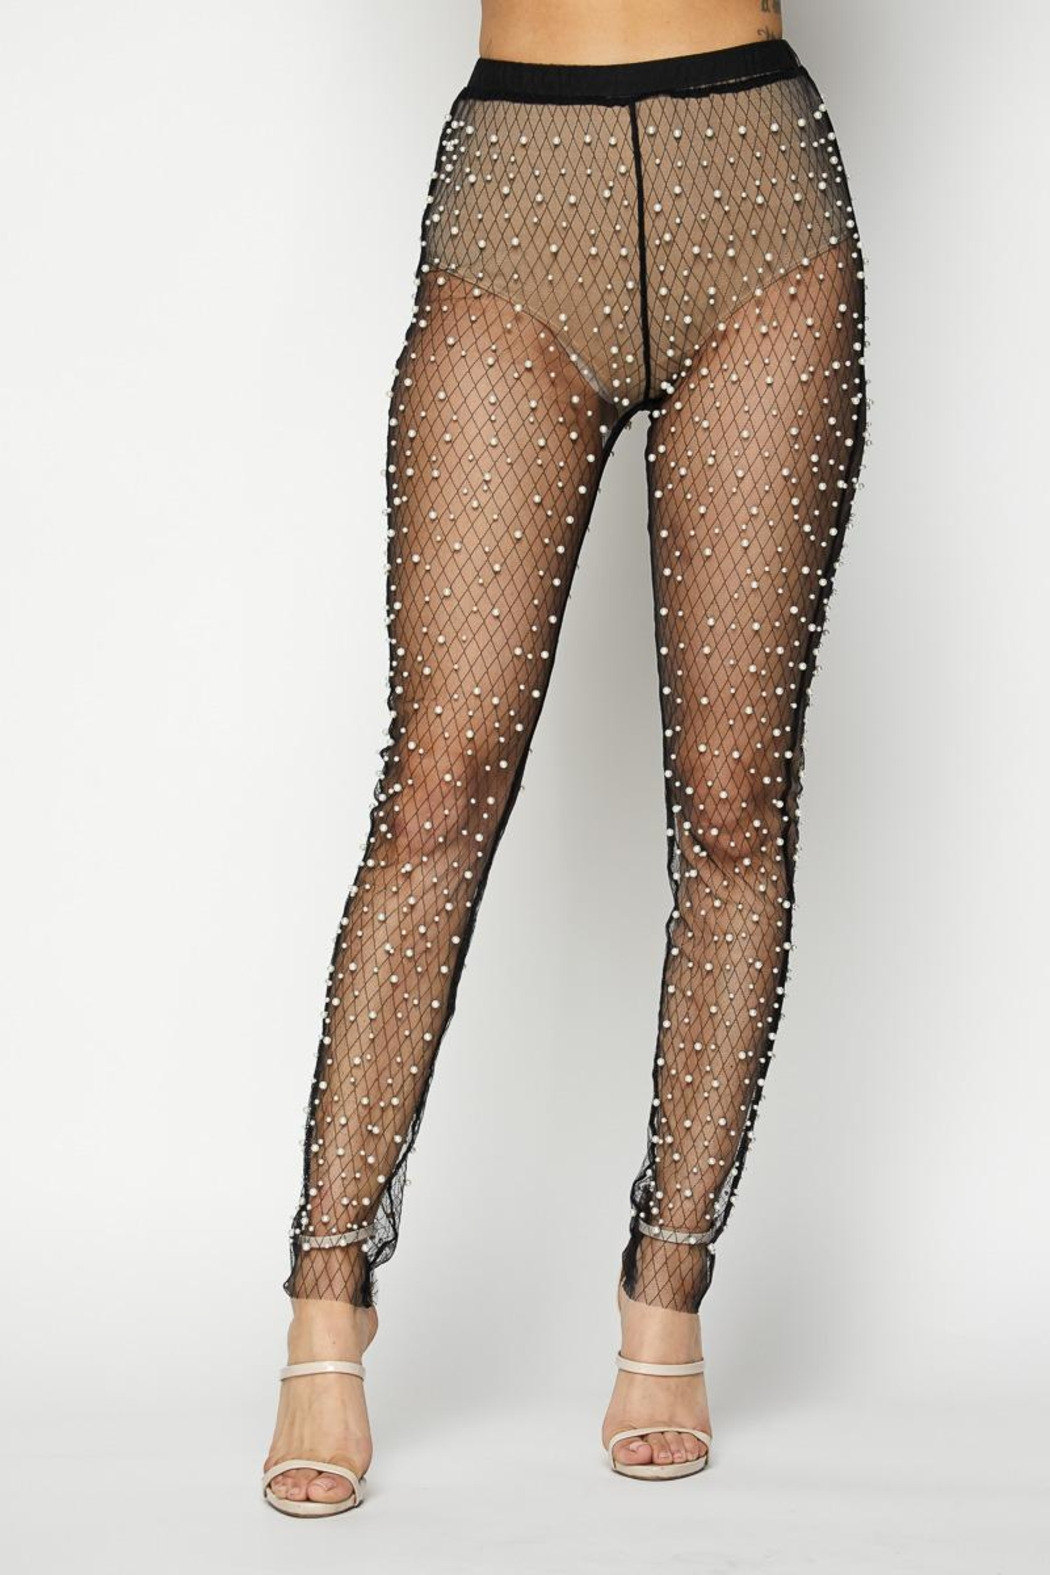 Hot   Delicious Pearl Mesh Pants from New York by Dor L Dor — Shoptiques 60eb84ea8